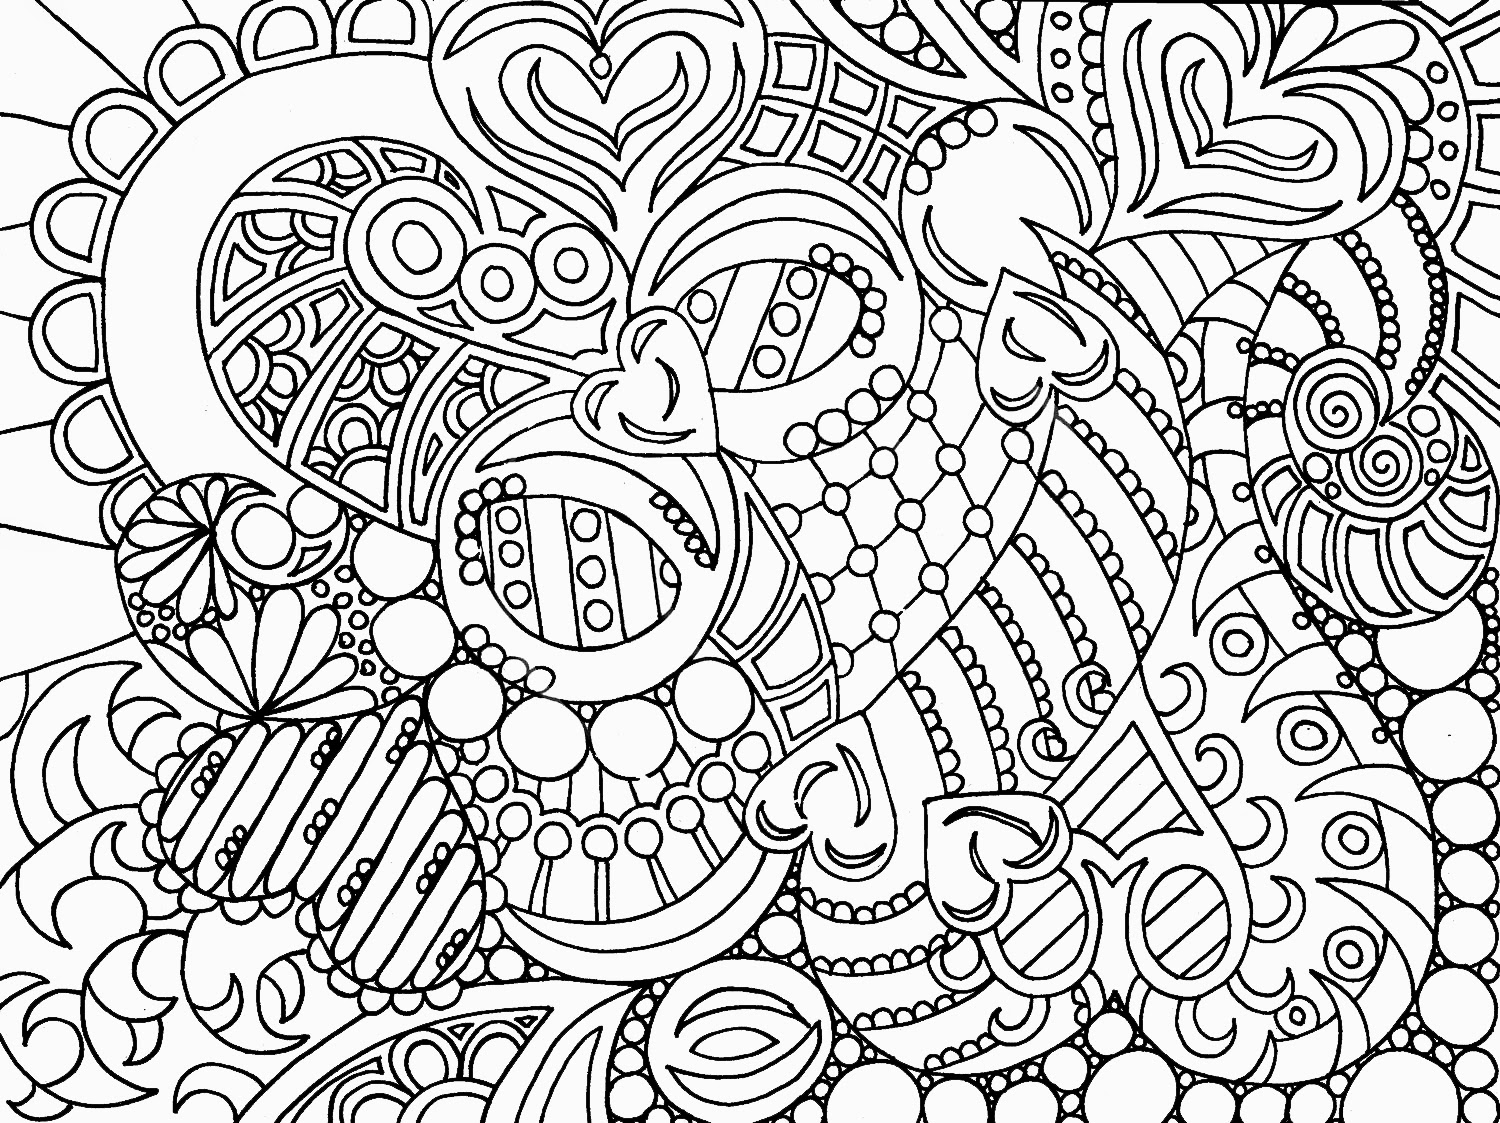 heart coloring pages for adults - Valentine's Day Coloring Pages